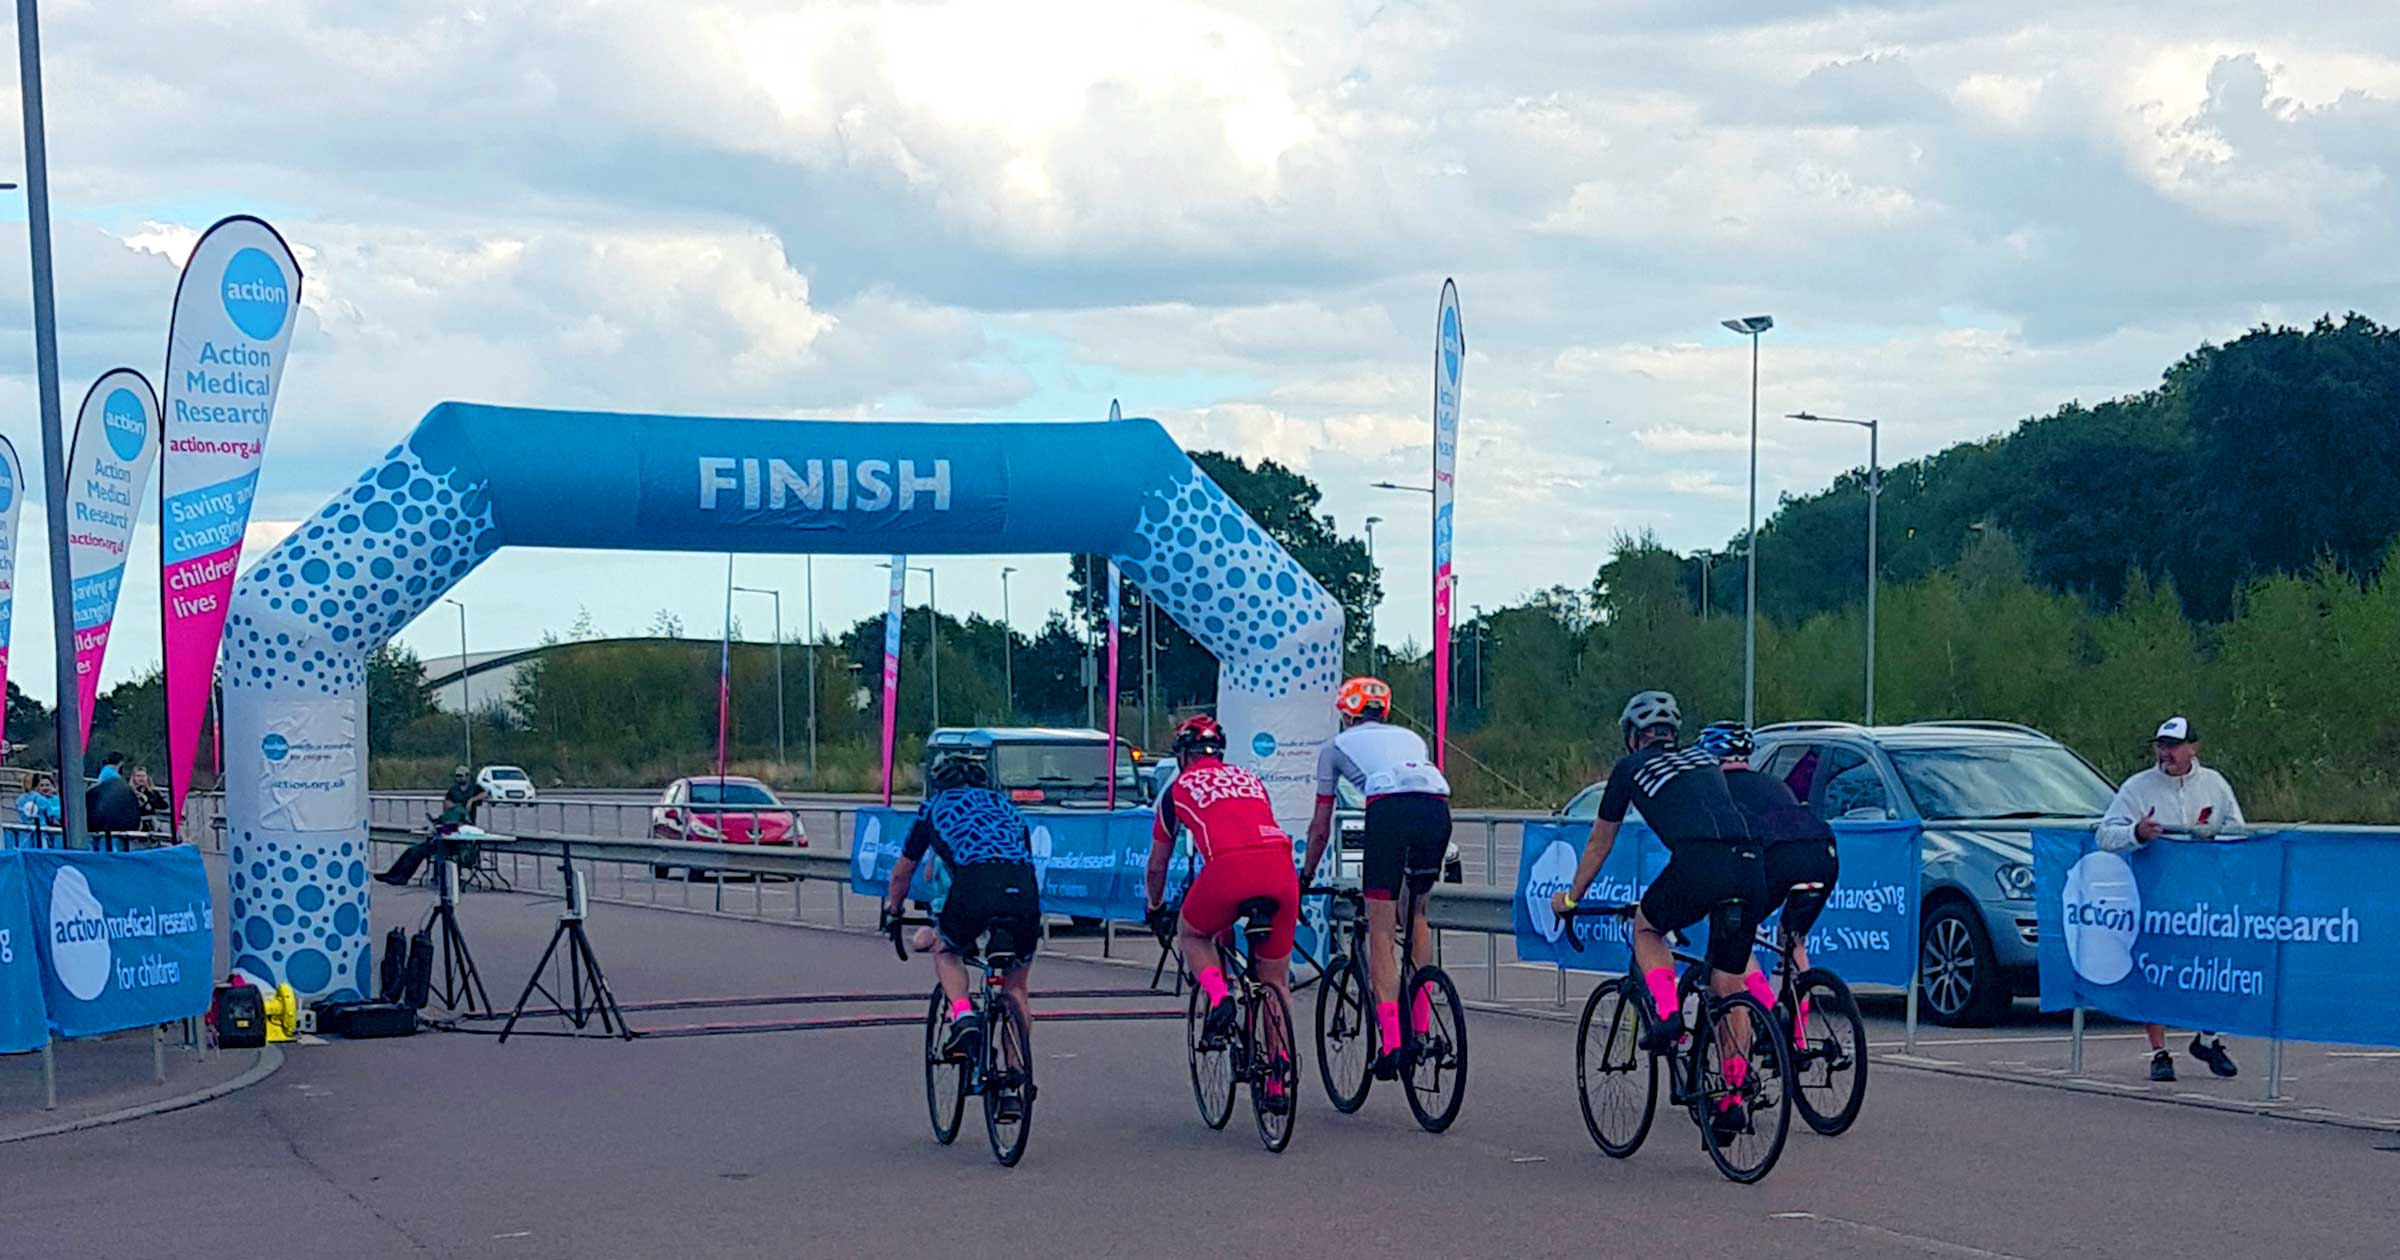 Image showing our team crossing the finish line